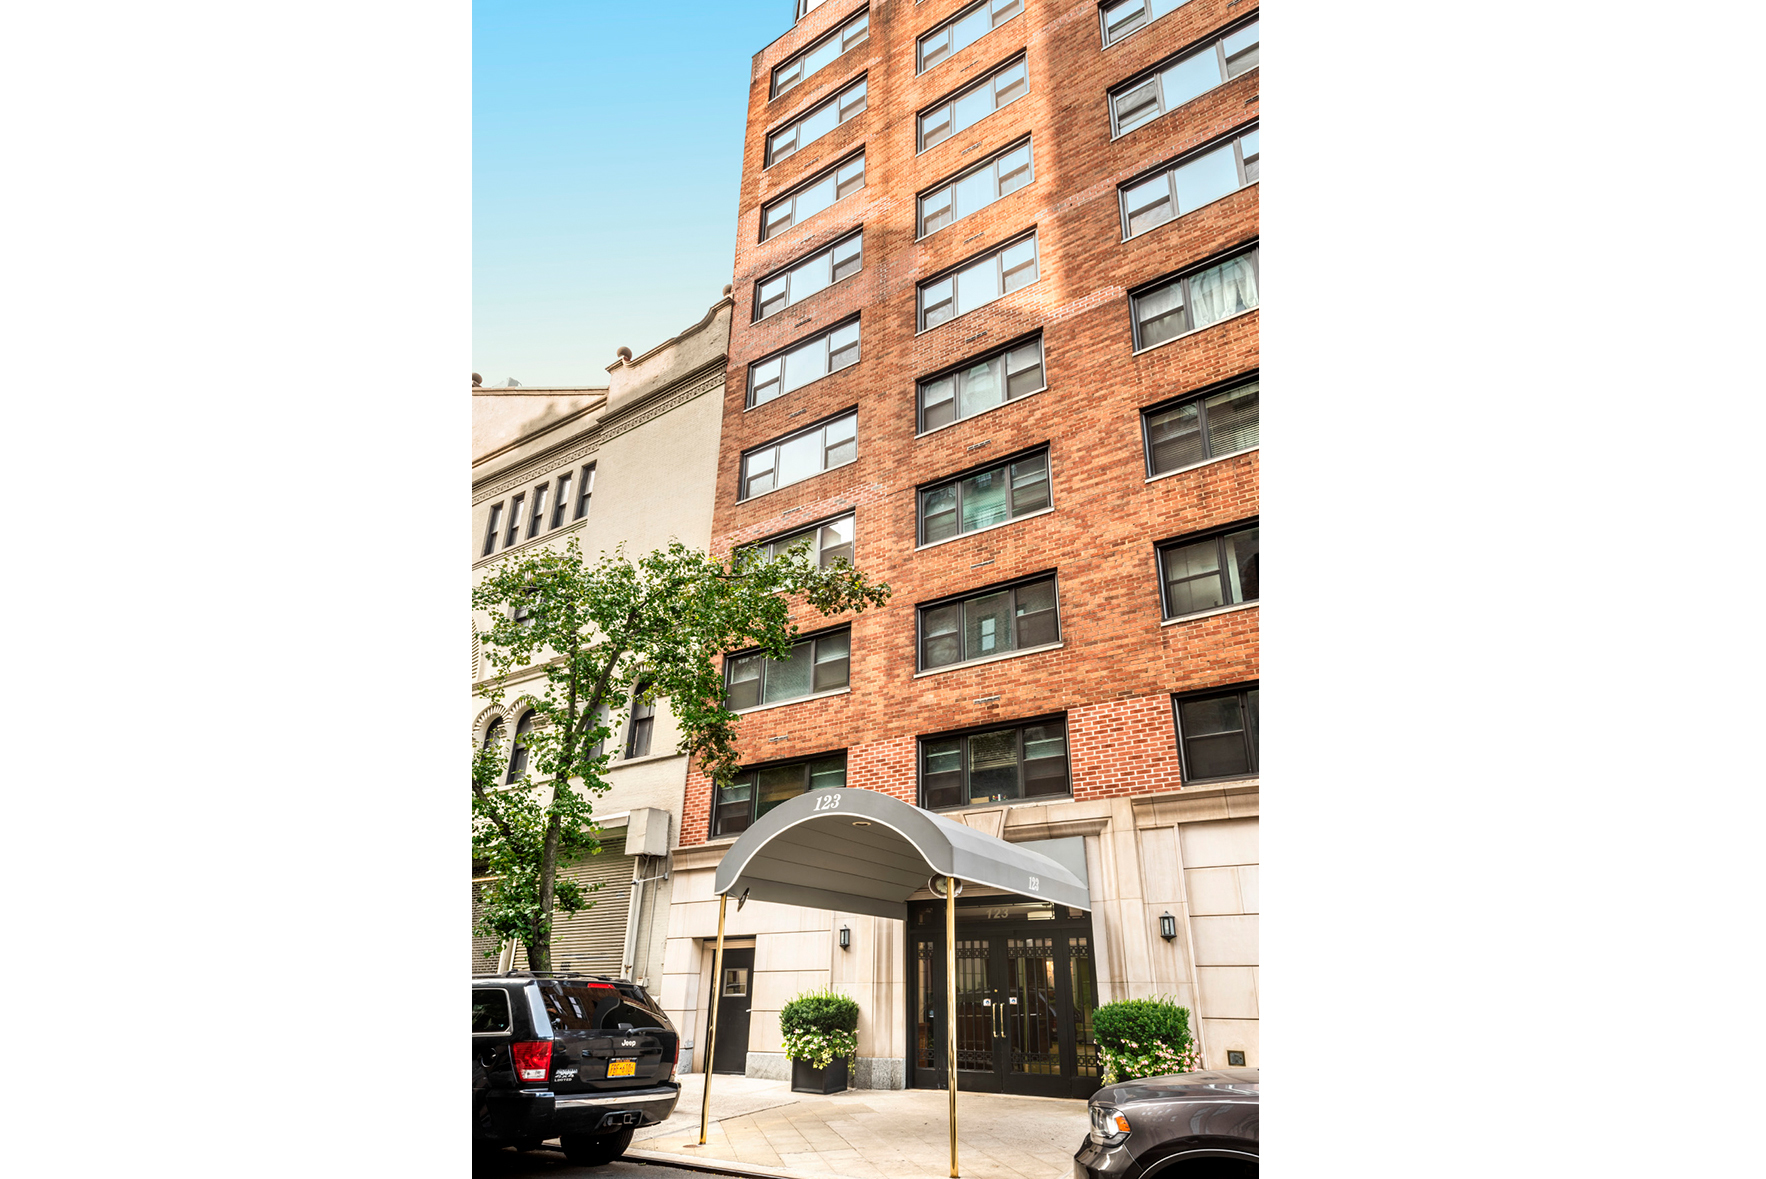 Apartment for sale at 123 East 75th Street, Apt 9BC